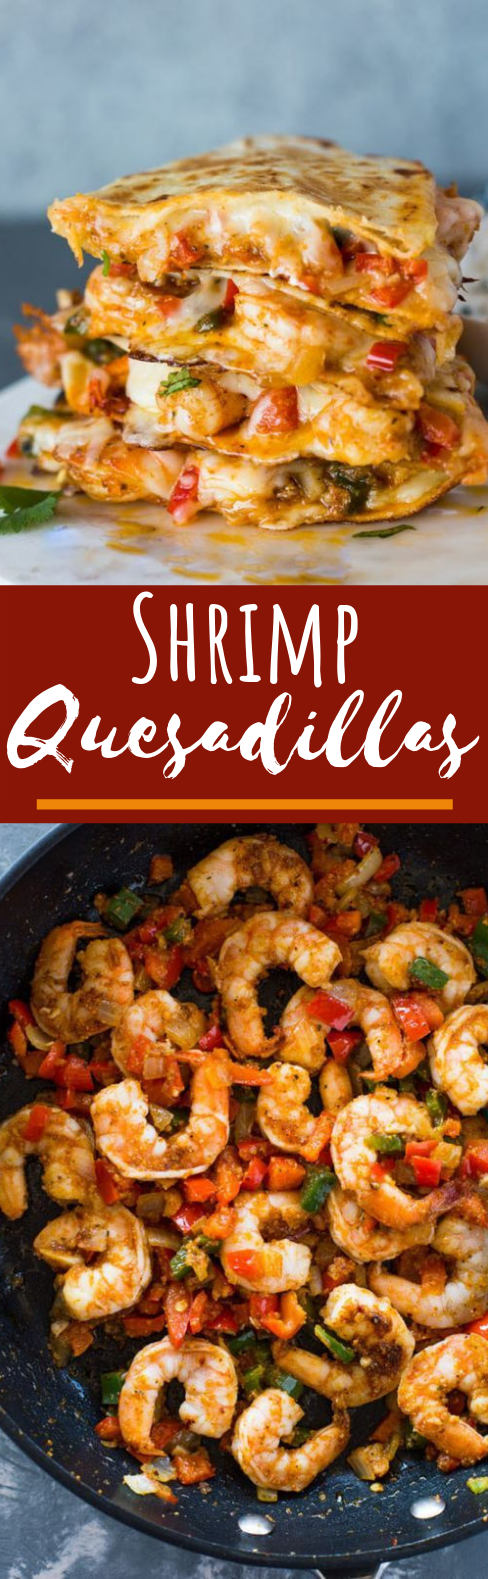 Shrimp Quesadillas #dinner #lunch